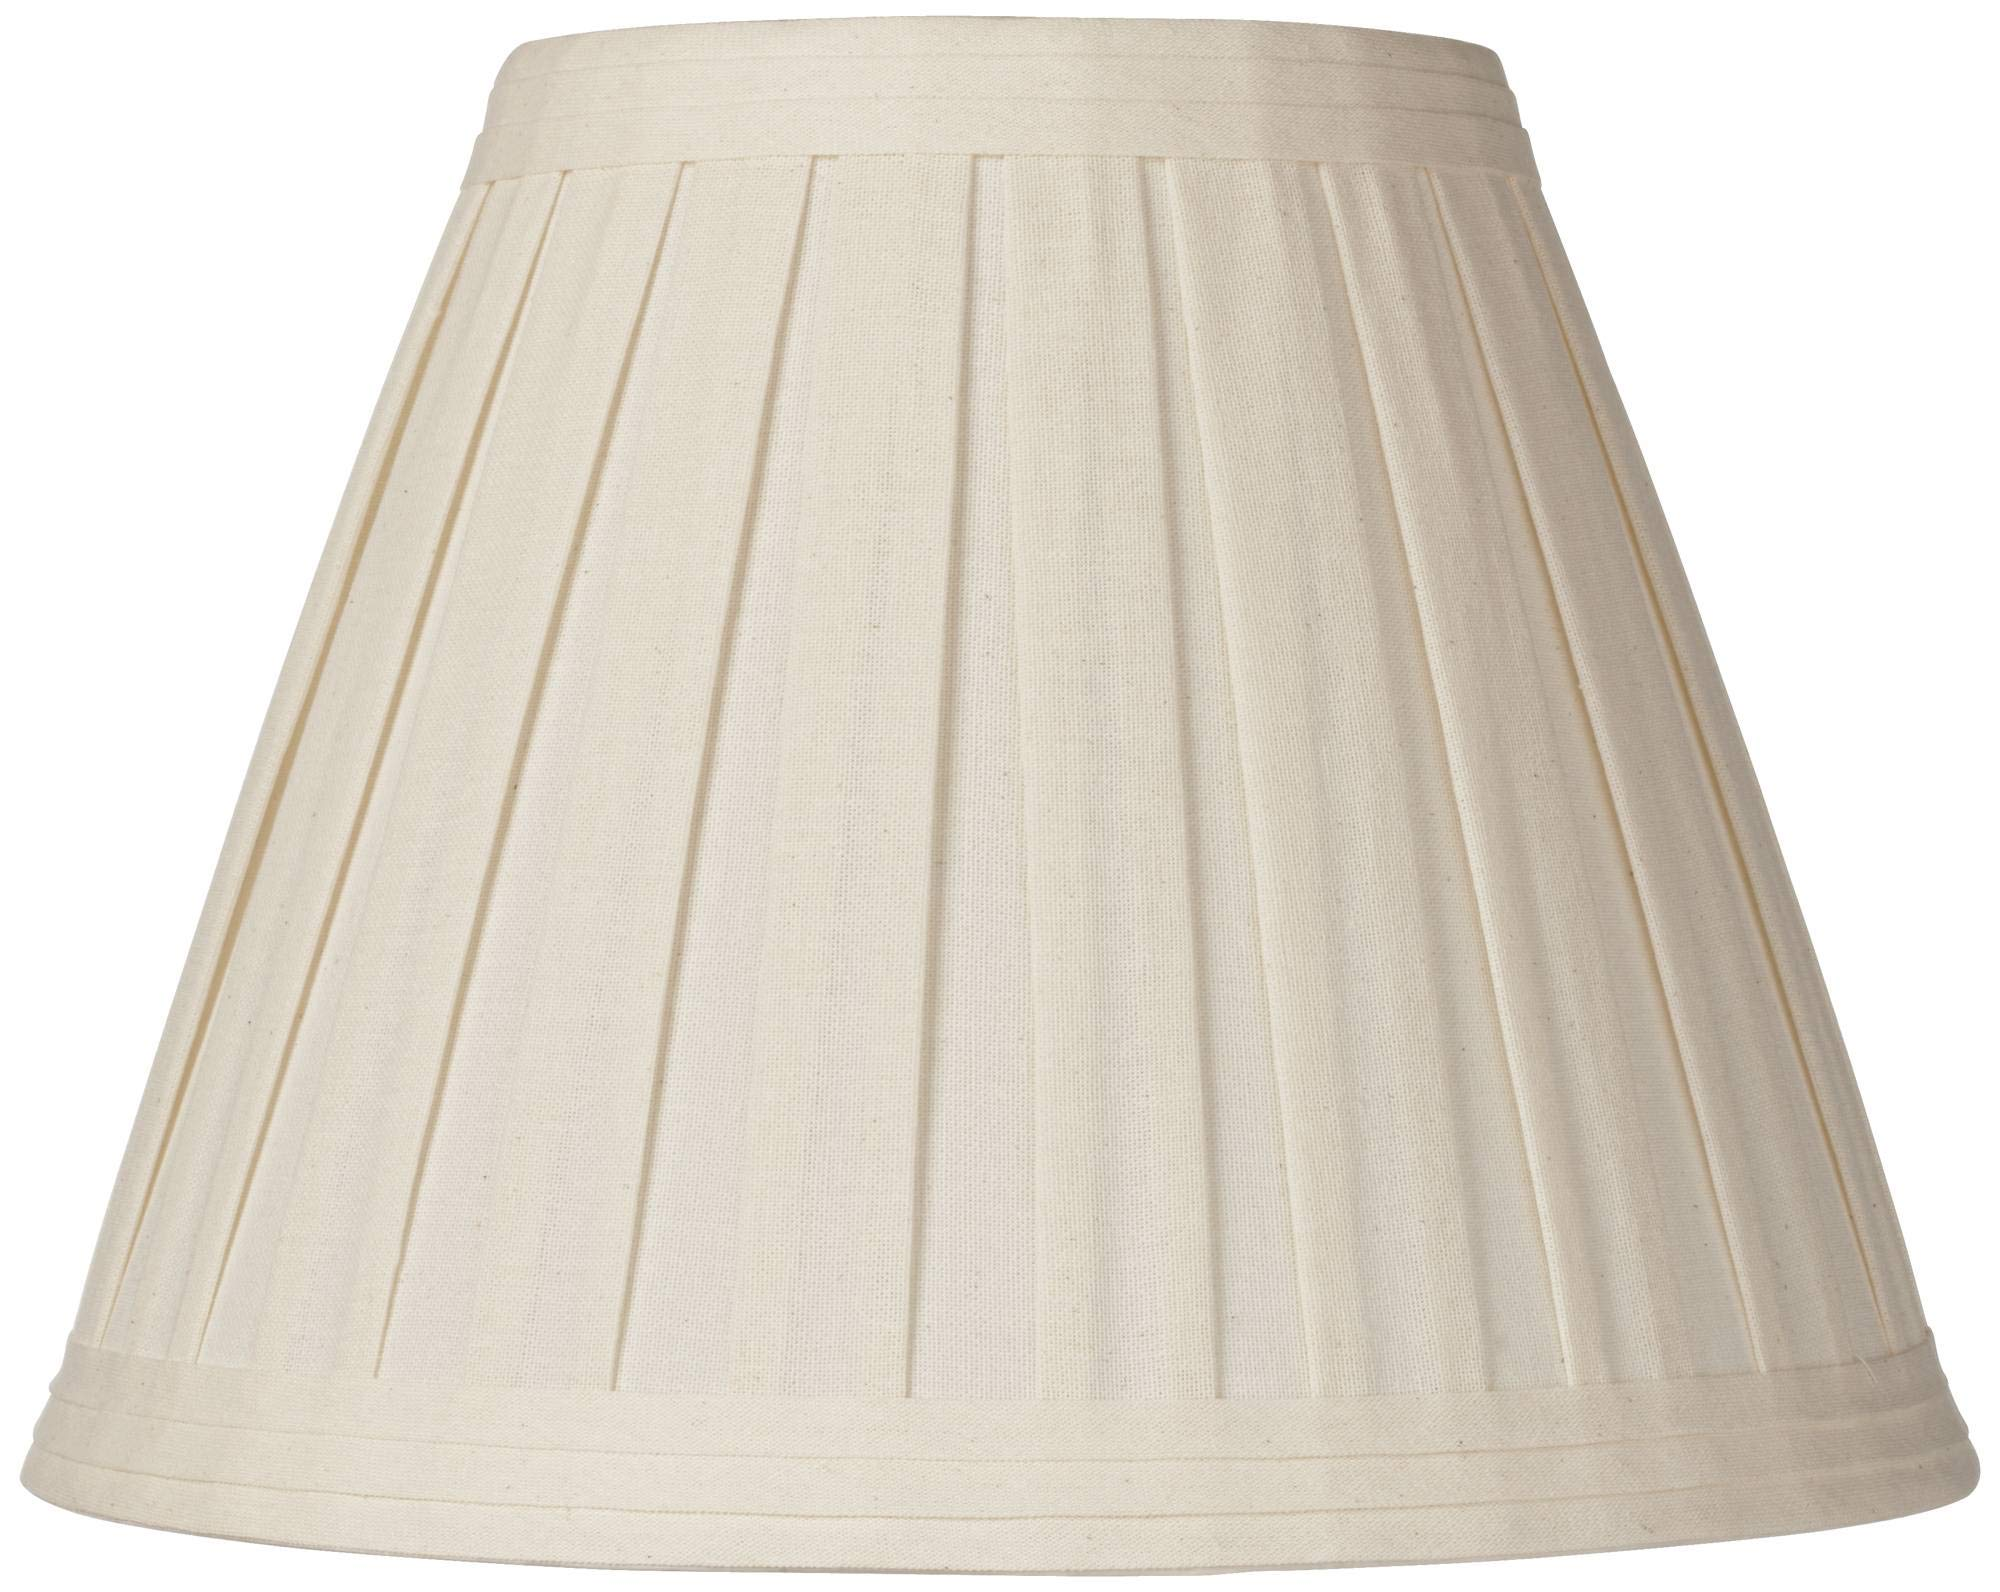 Creme Linen Box Pleat Lamp Shade 7x14x11 (Spider) - Springcrest by Springcrest